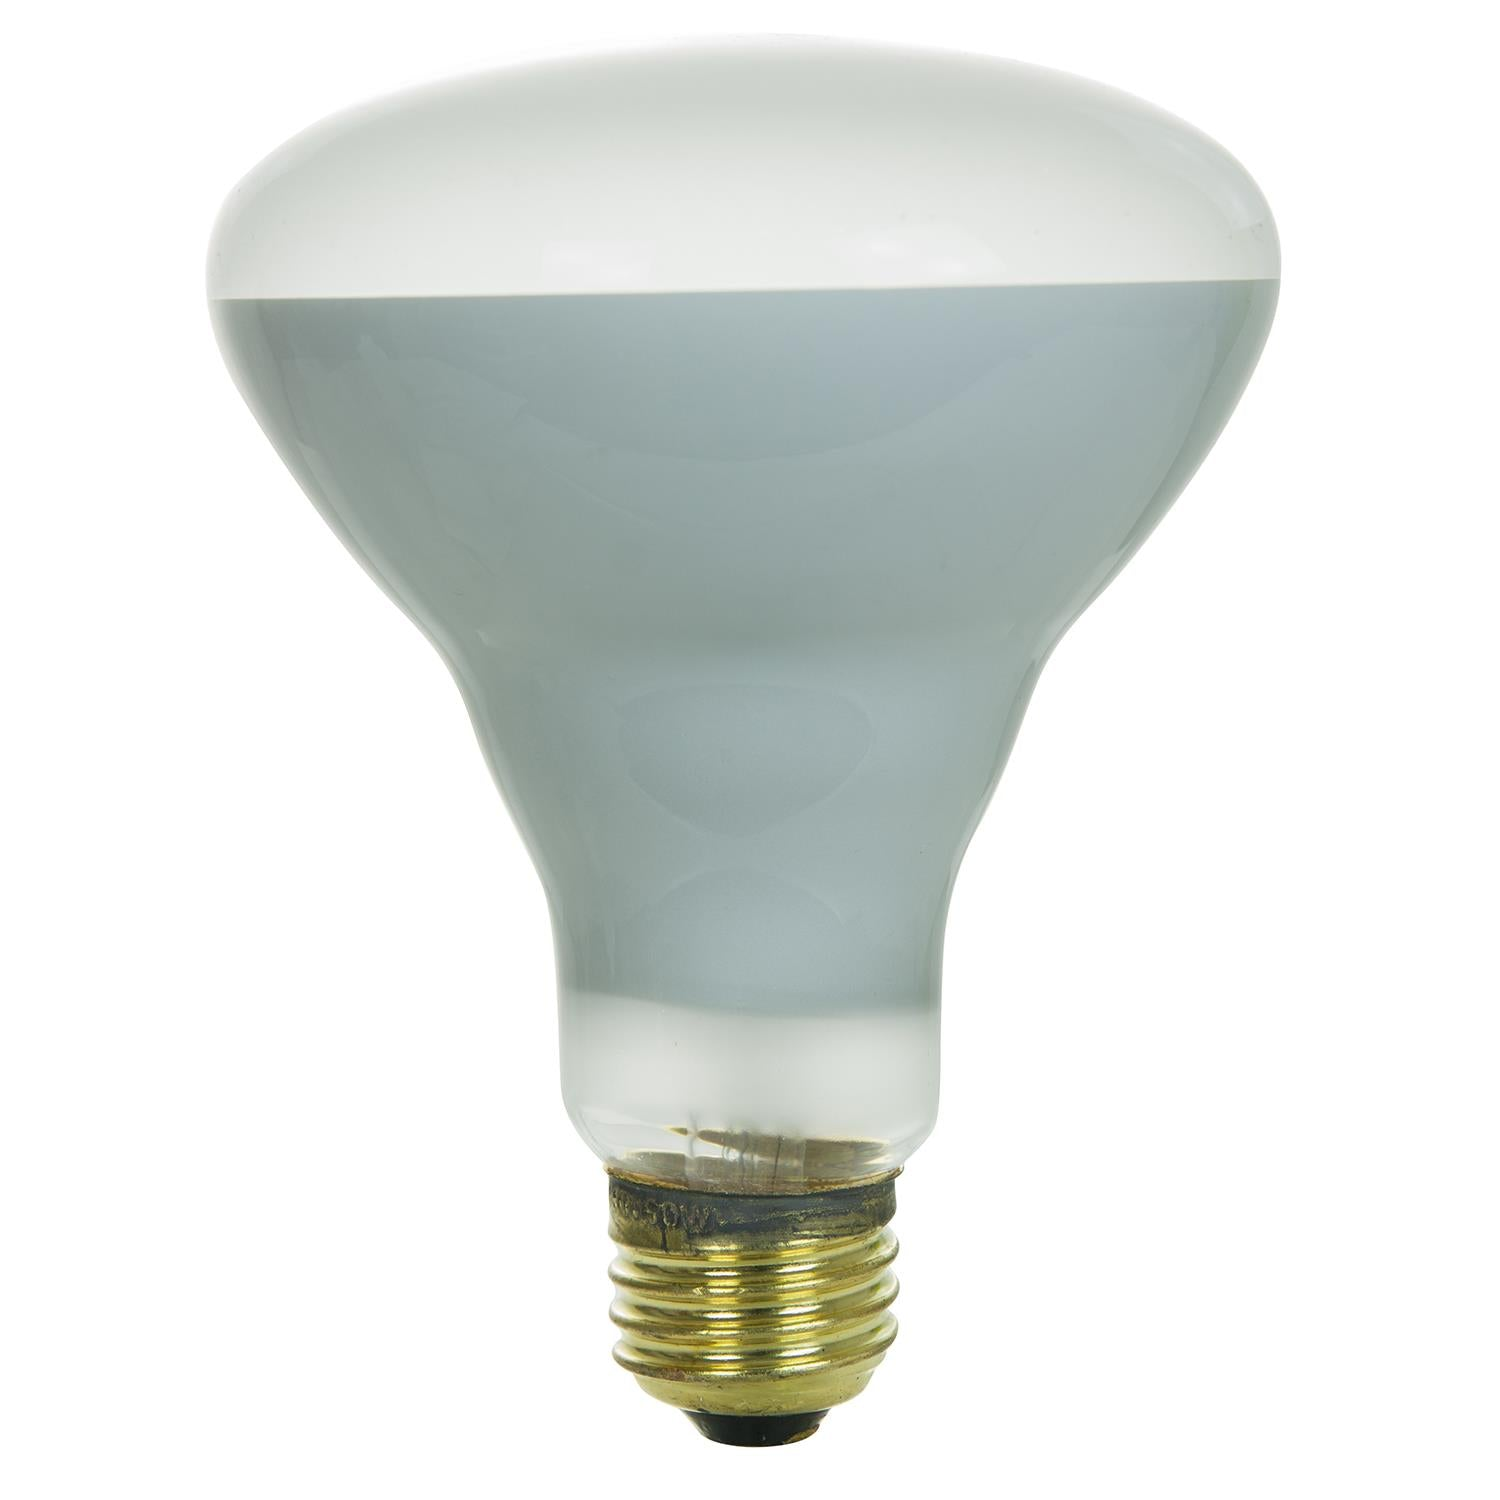 SUNLITE 50w 130v BR30 Flood Medium Base Clear Incandescent Bulb